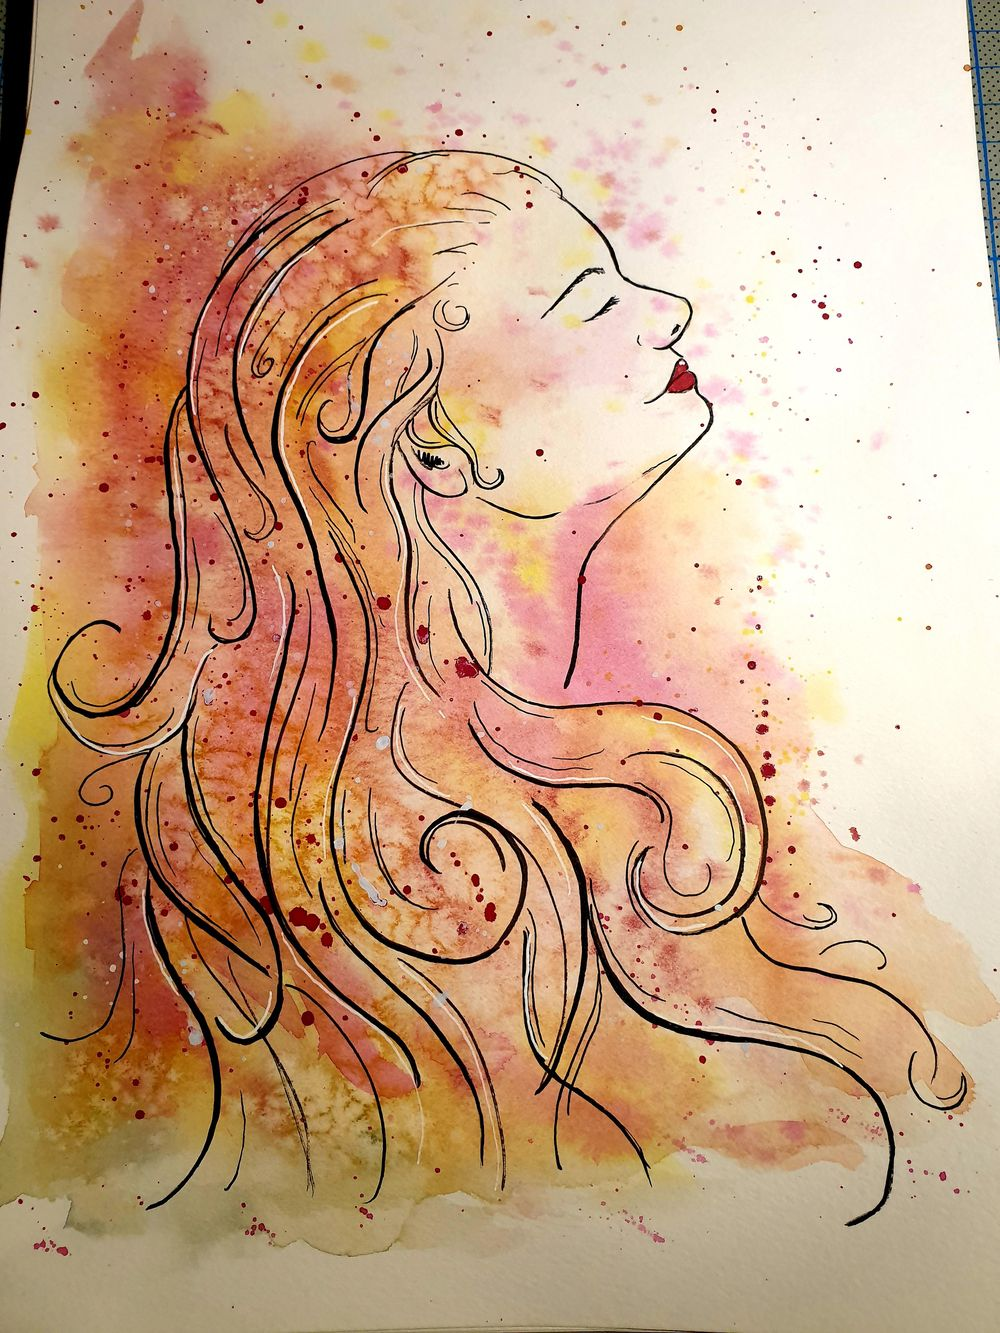 Ink and Watercolor - image 2 - student project